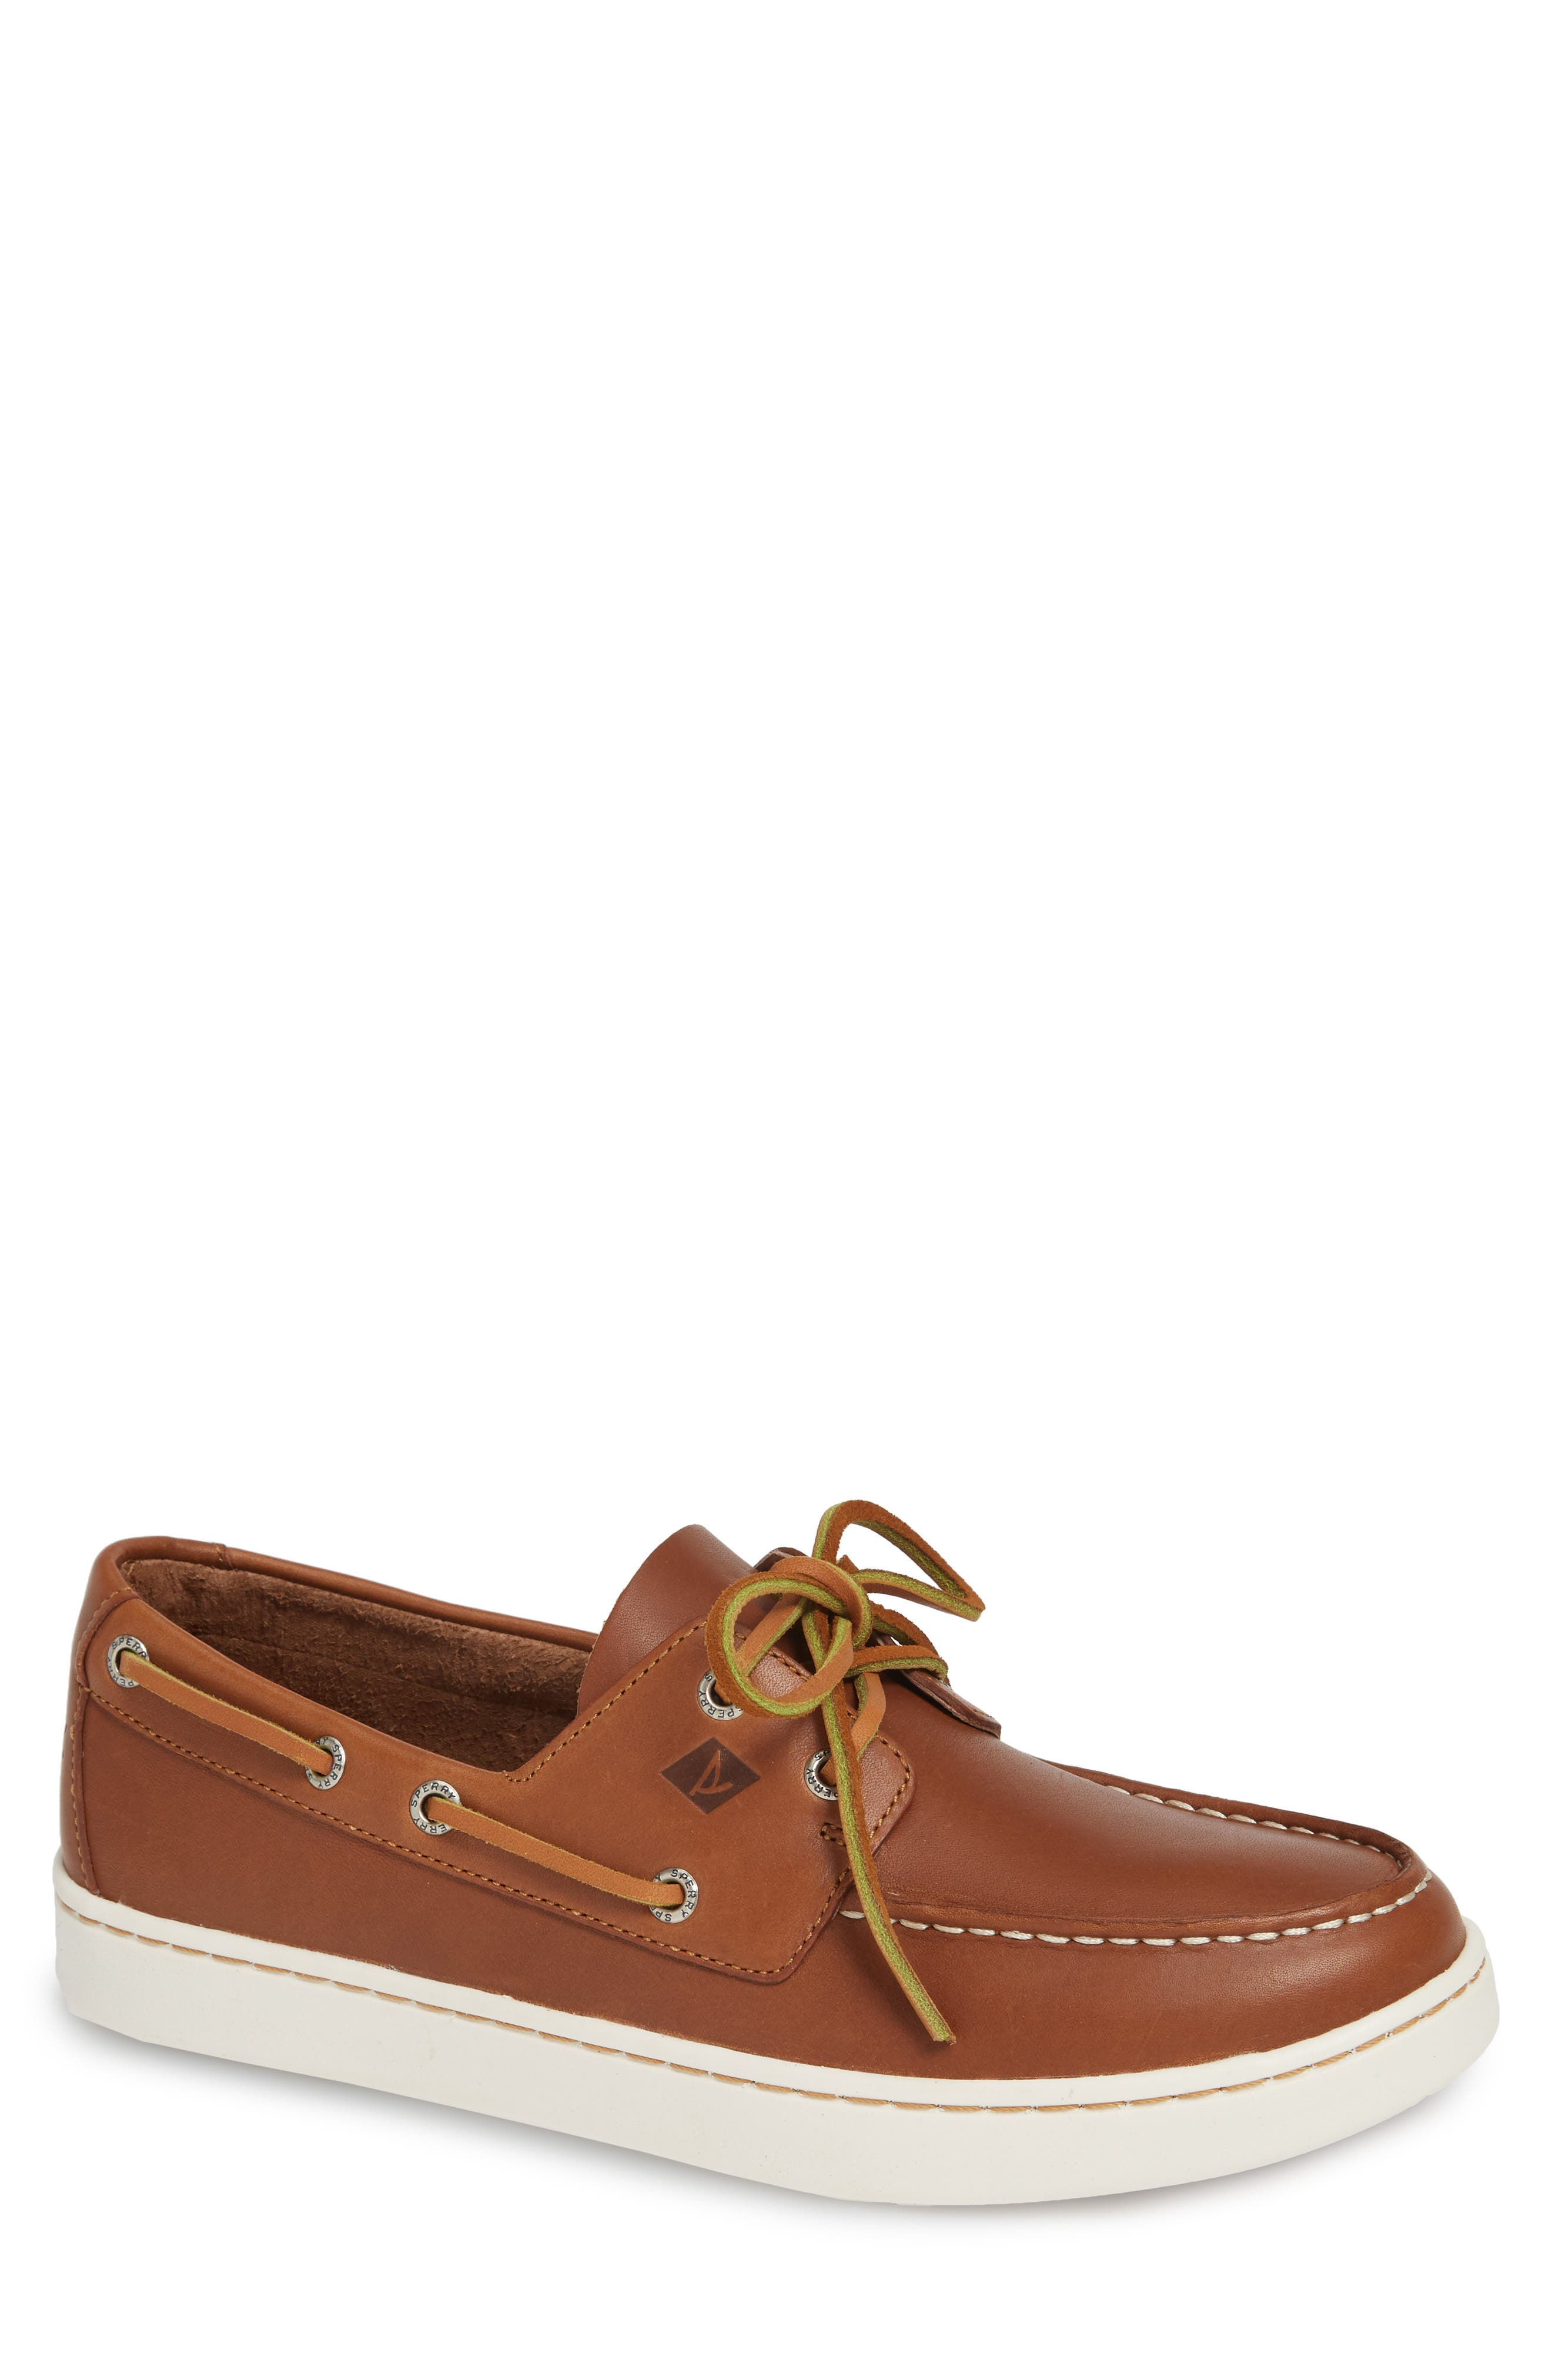 SPERRY Cup Boat Shoe, Main, color, TAN